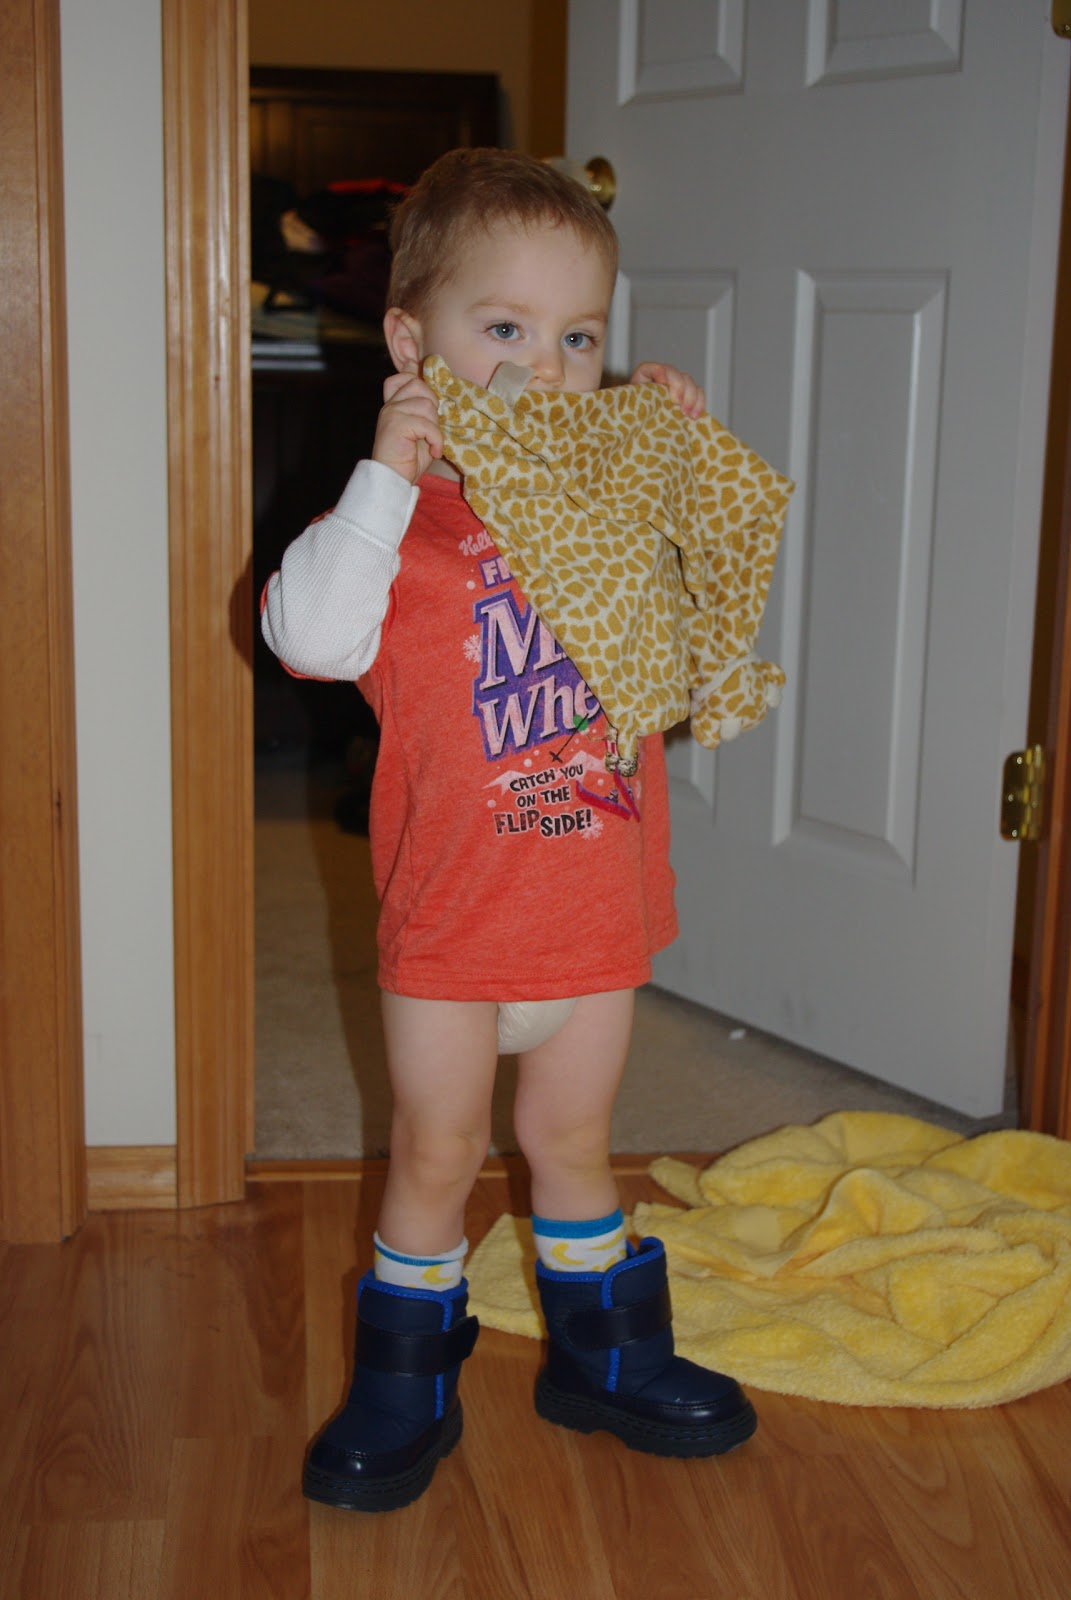 No pants. Socks. Boots on the wrong feet. Awesome.